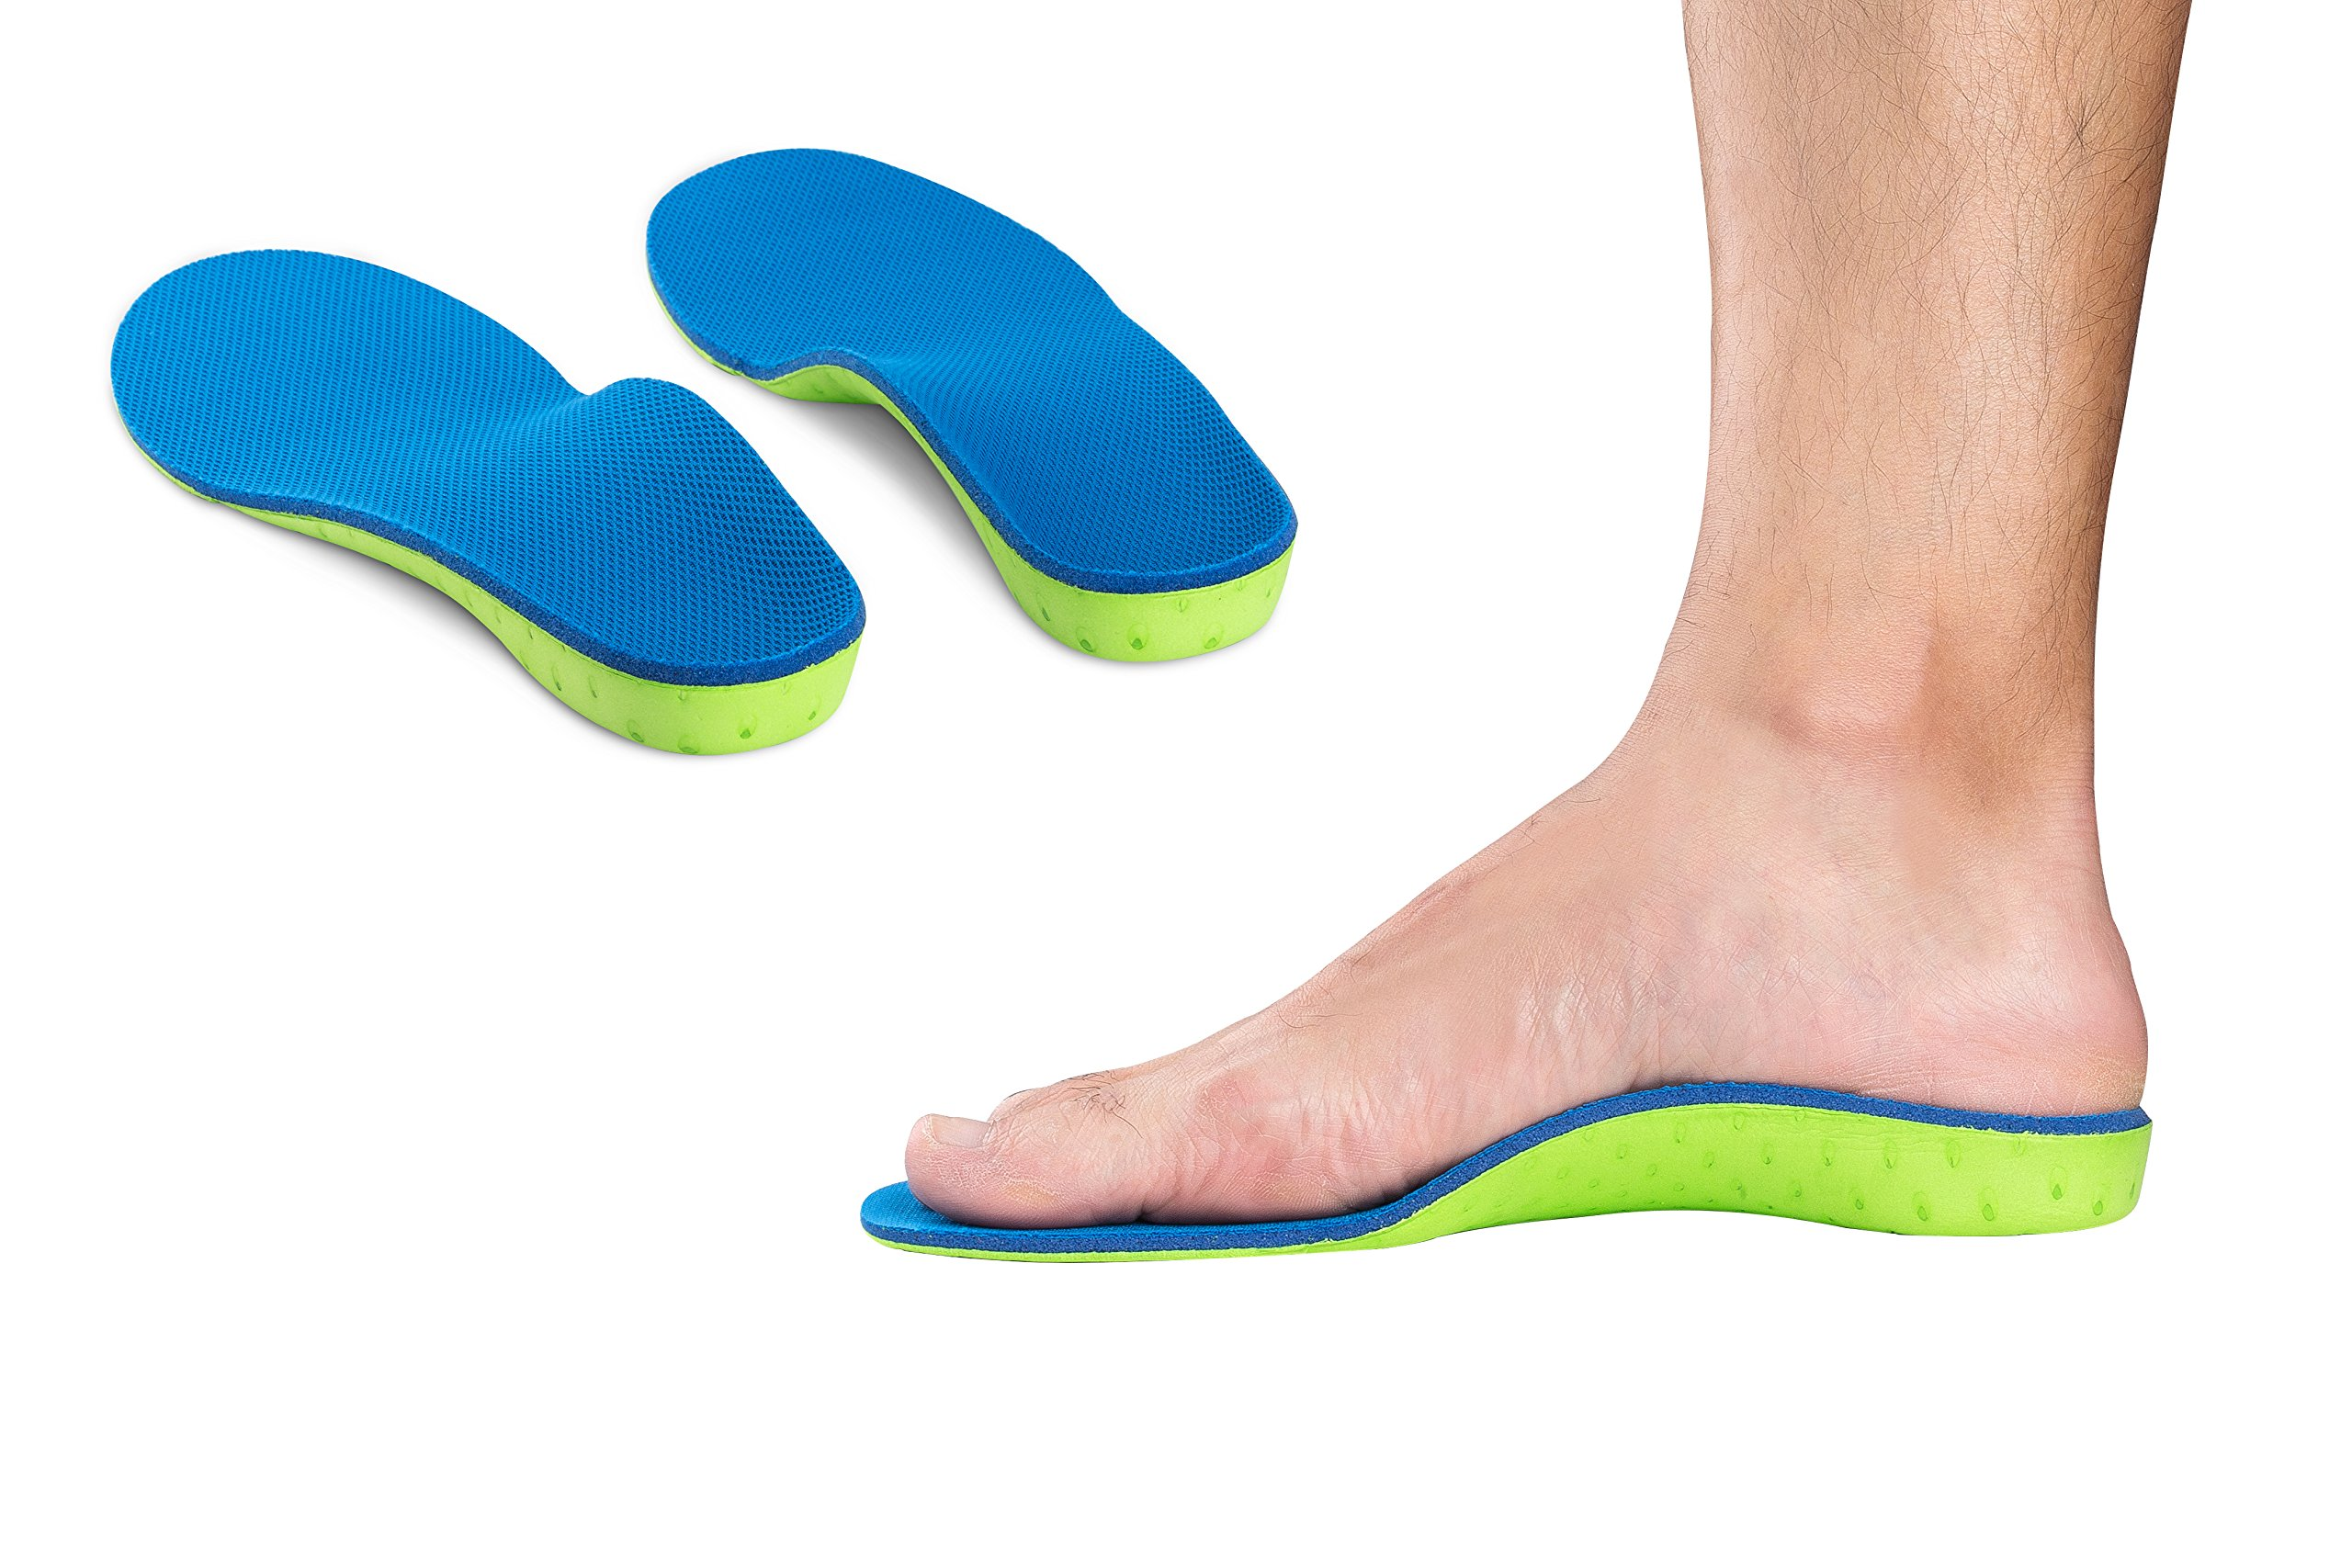 High Arch Support Plantar Fasciitis Insoles Orthotic Inserts for Flat Feet and Over Pronation (S Women8.5-10 Men8-9)